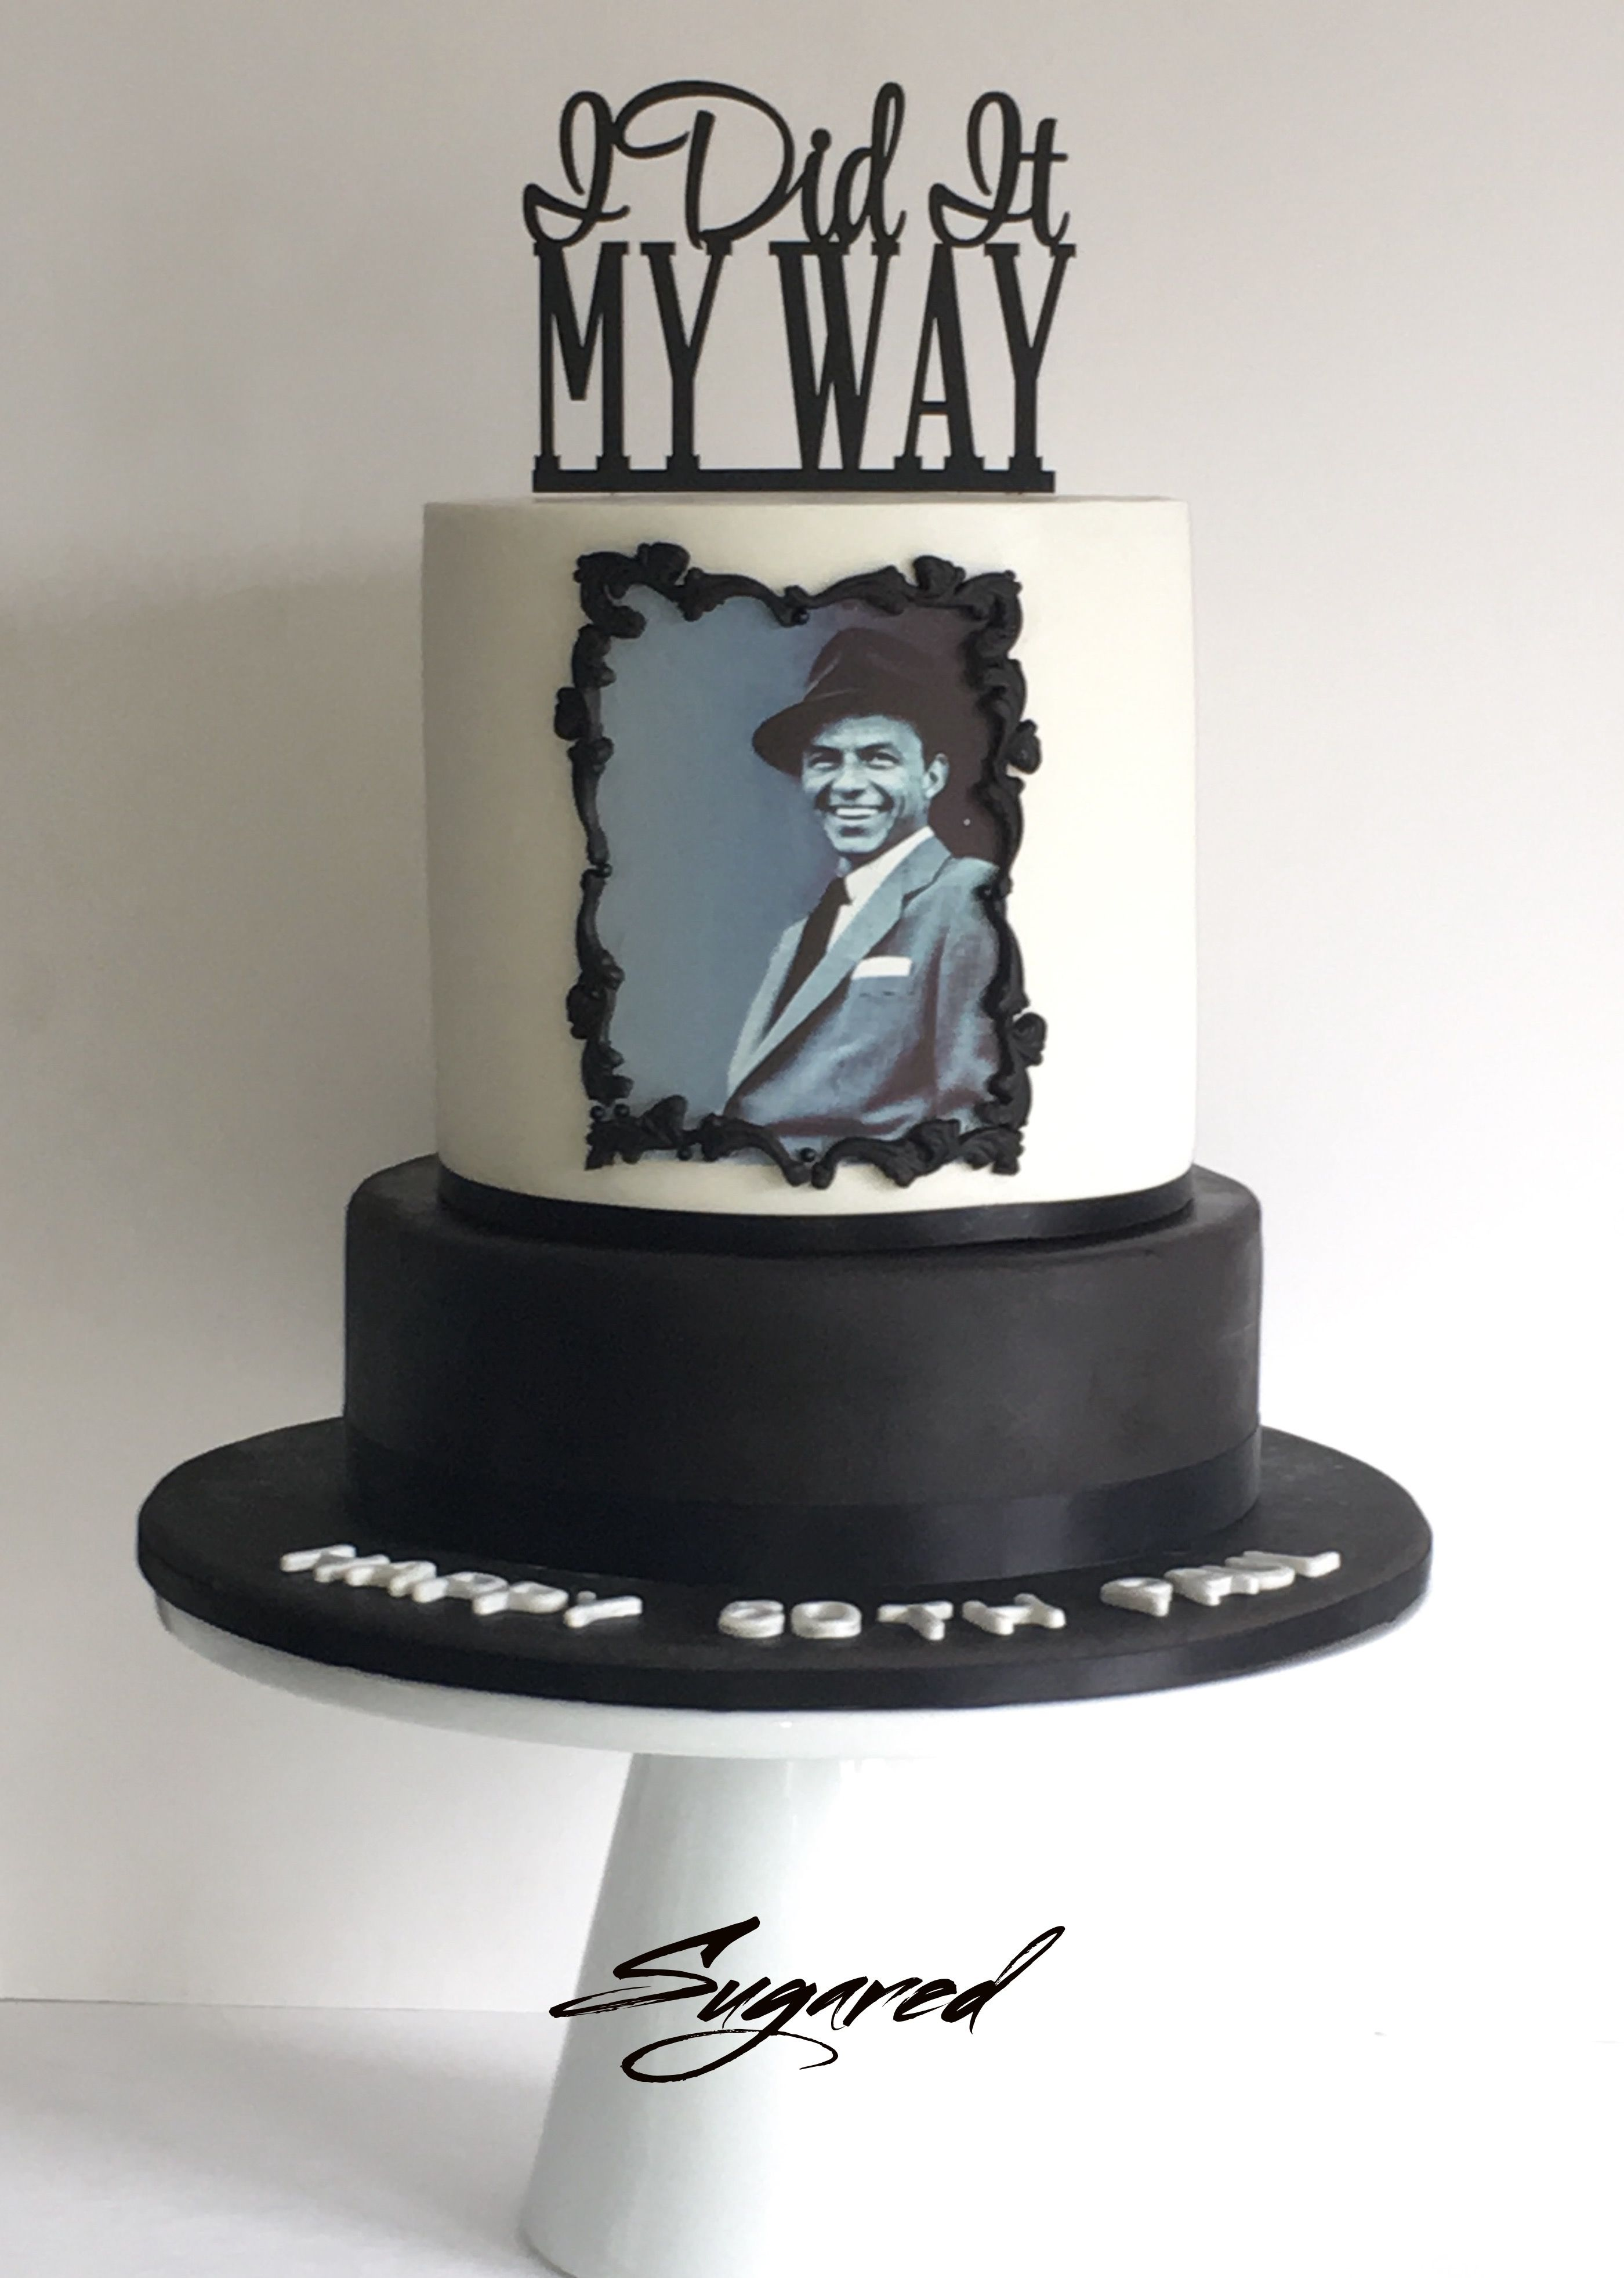 Frank Sinatra Cake Sugared Cookies And Sweets Inc Sugared Cookies